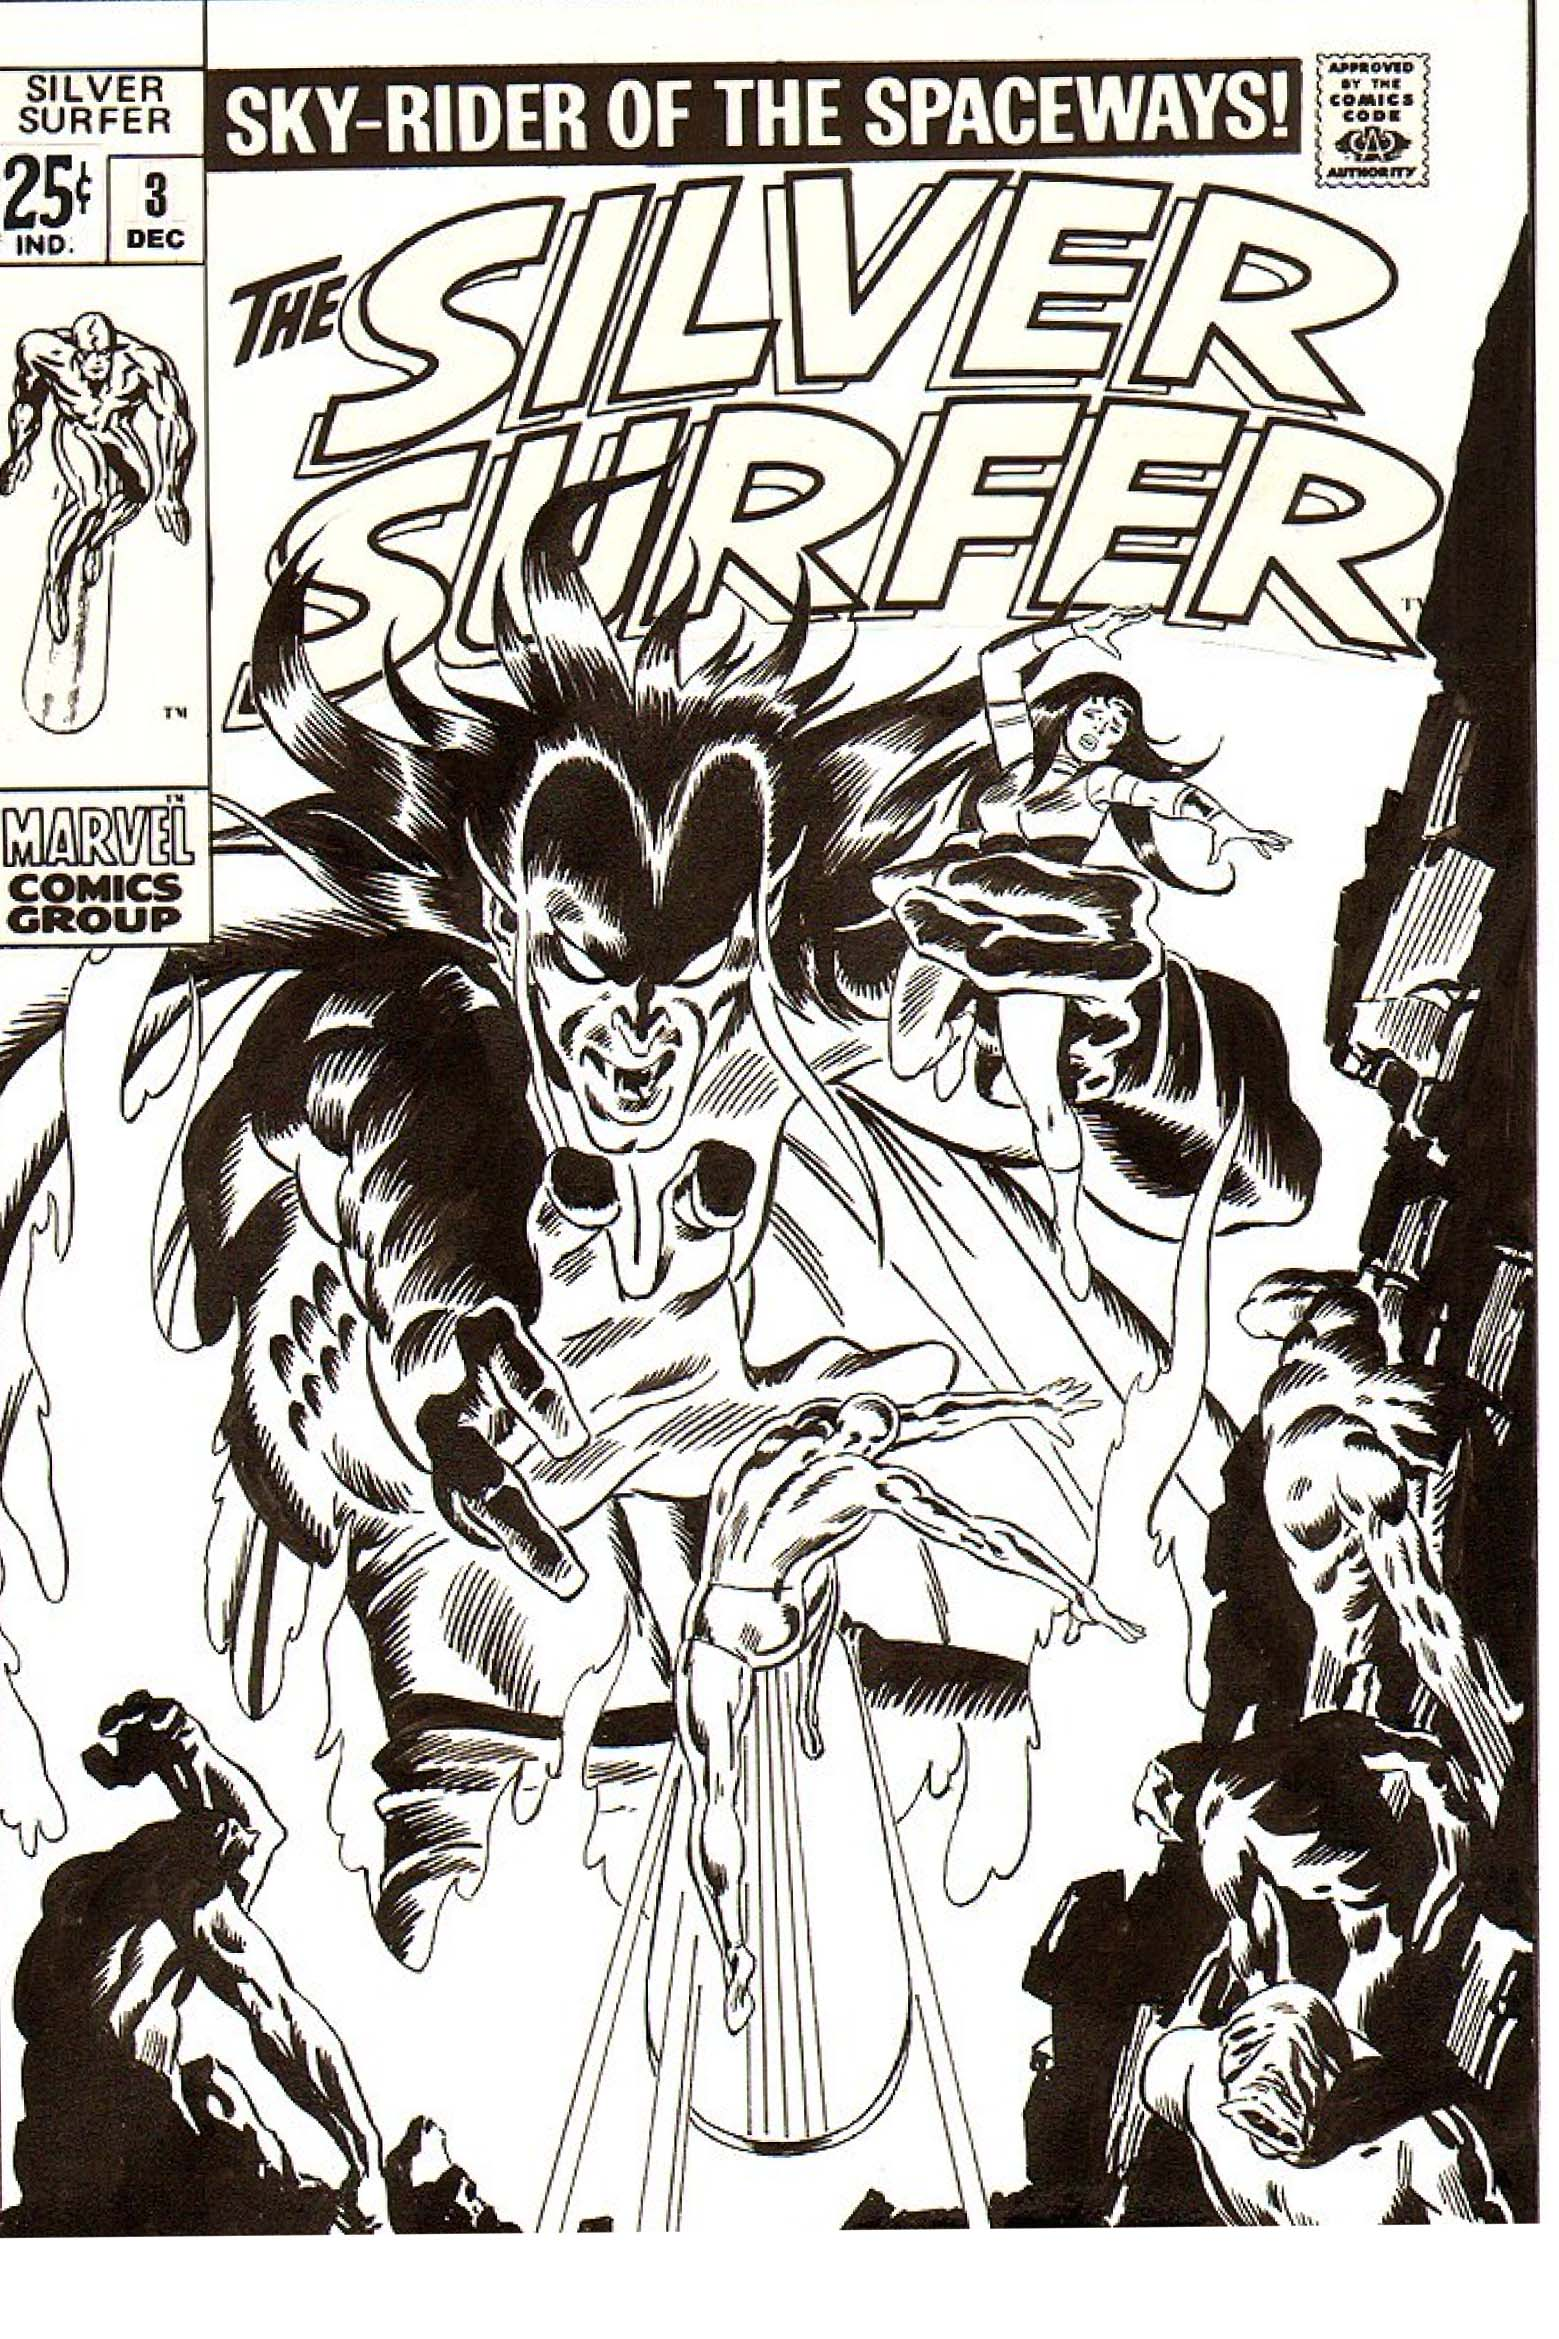 John Buscema and The Silver Surfer